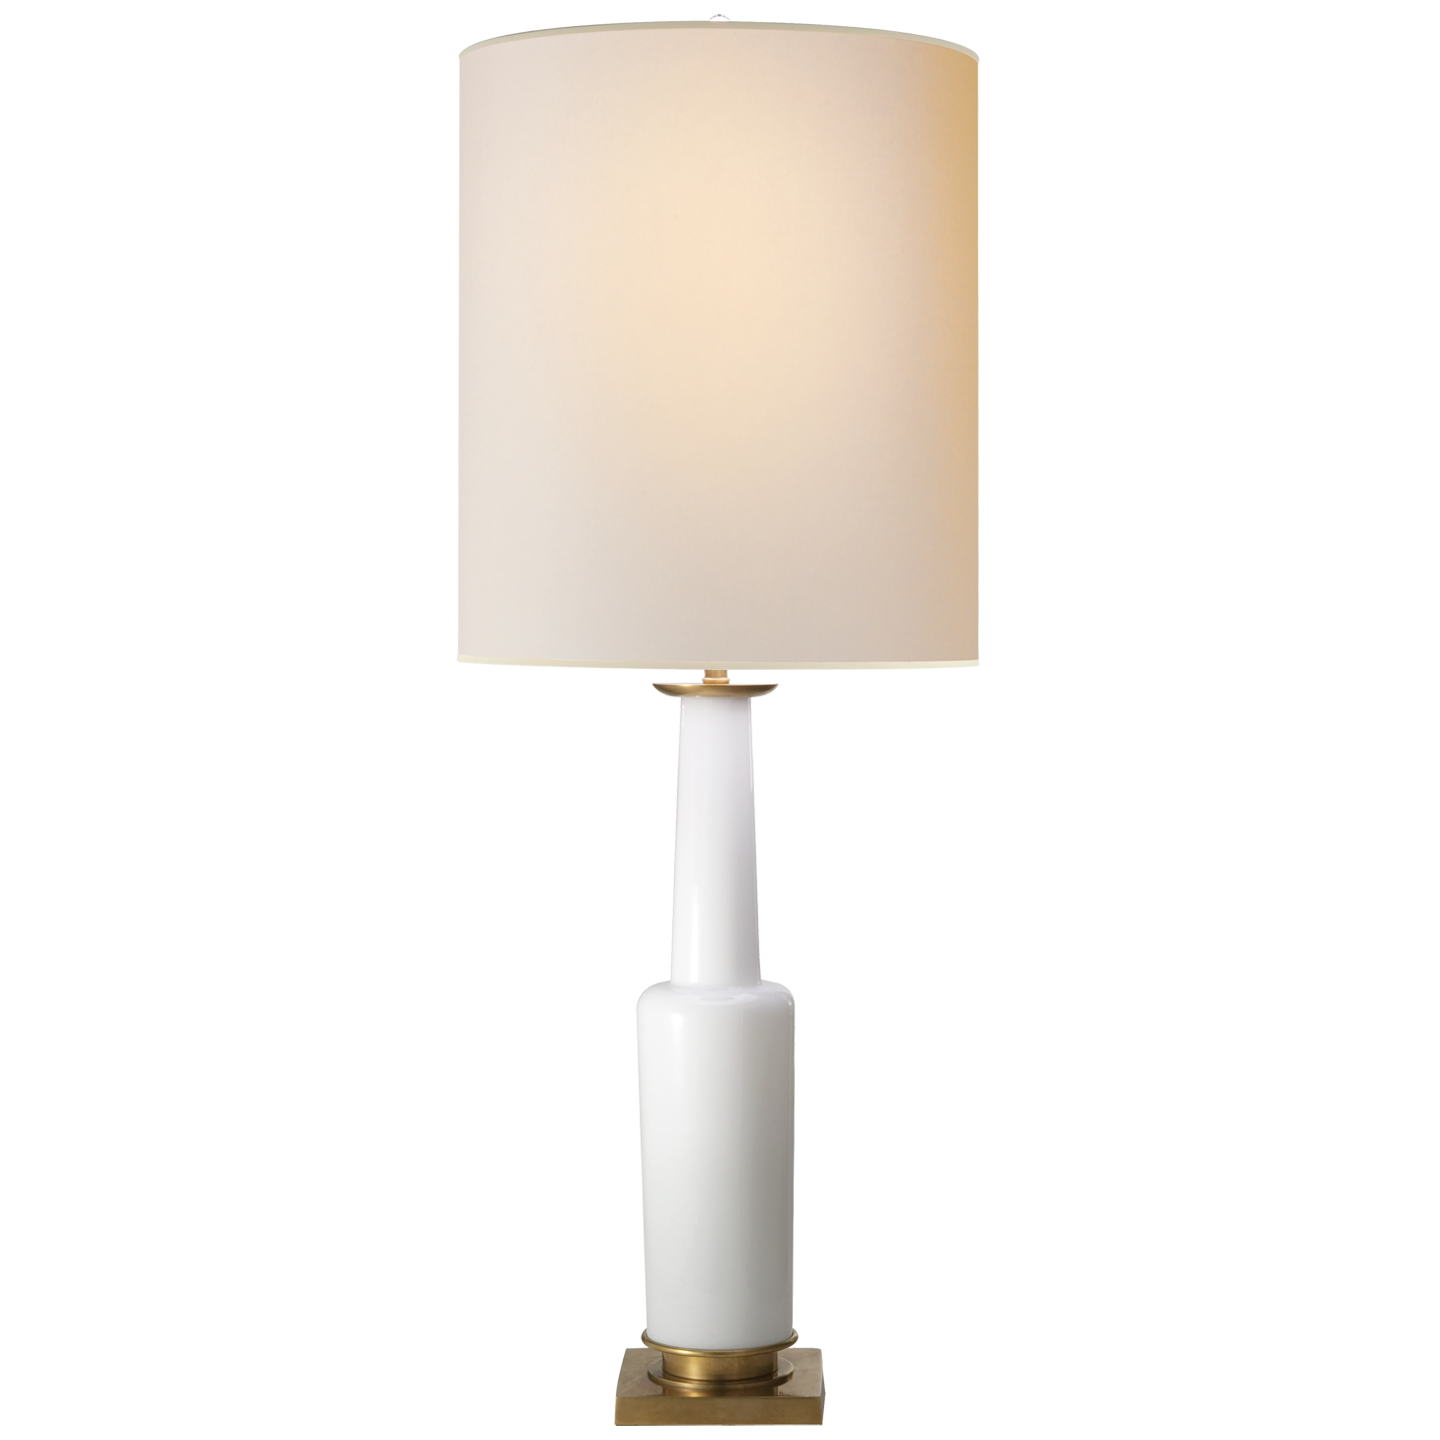 Fiona Small Table Lamp With Images Small Table Lamp Decorative Table Lamps Table Lamp Lighting